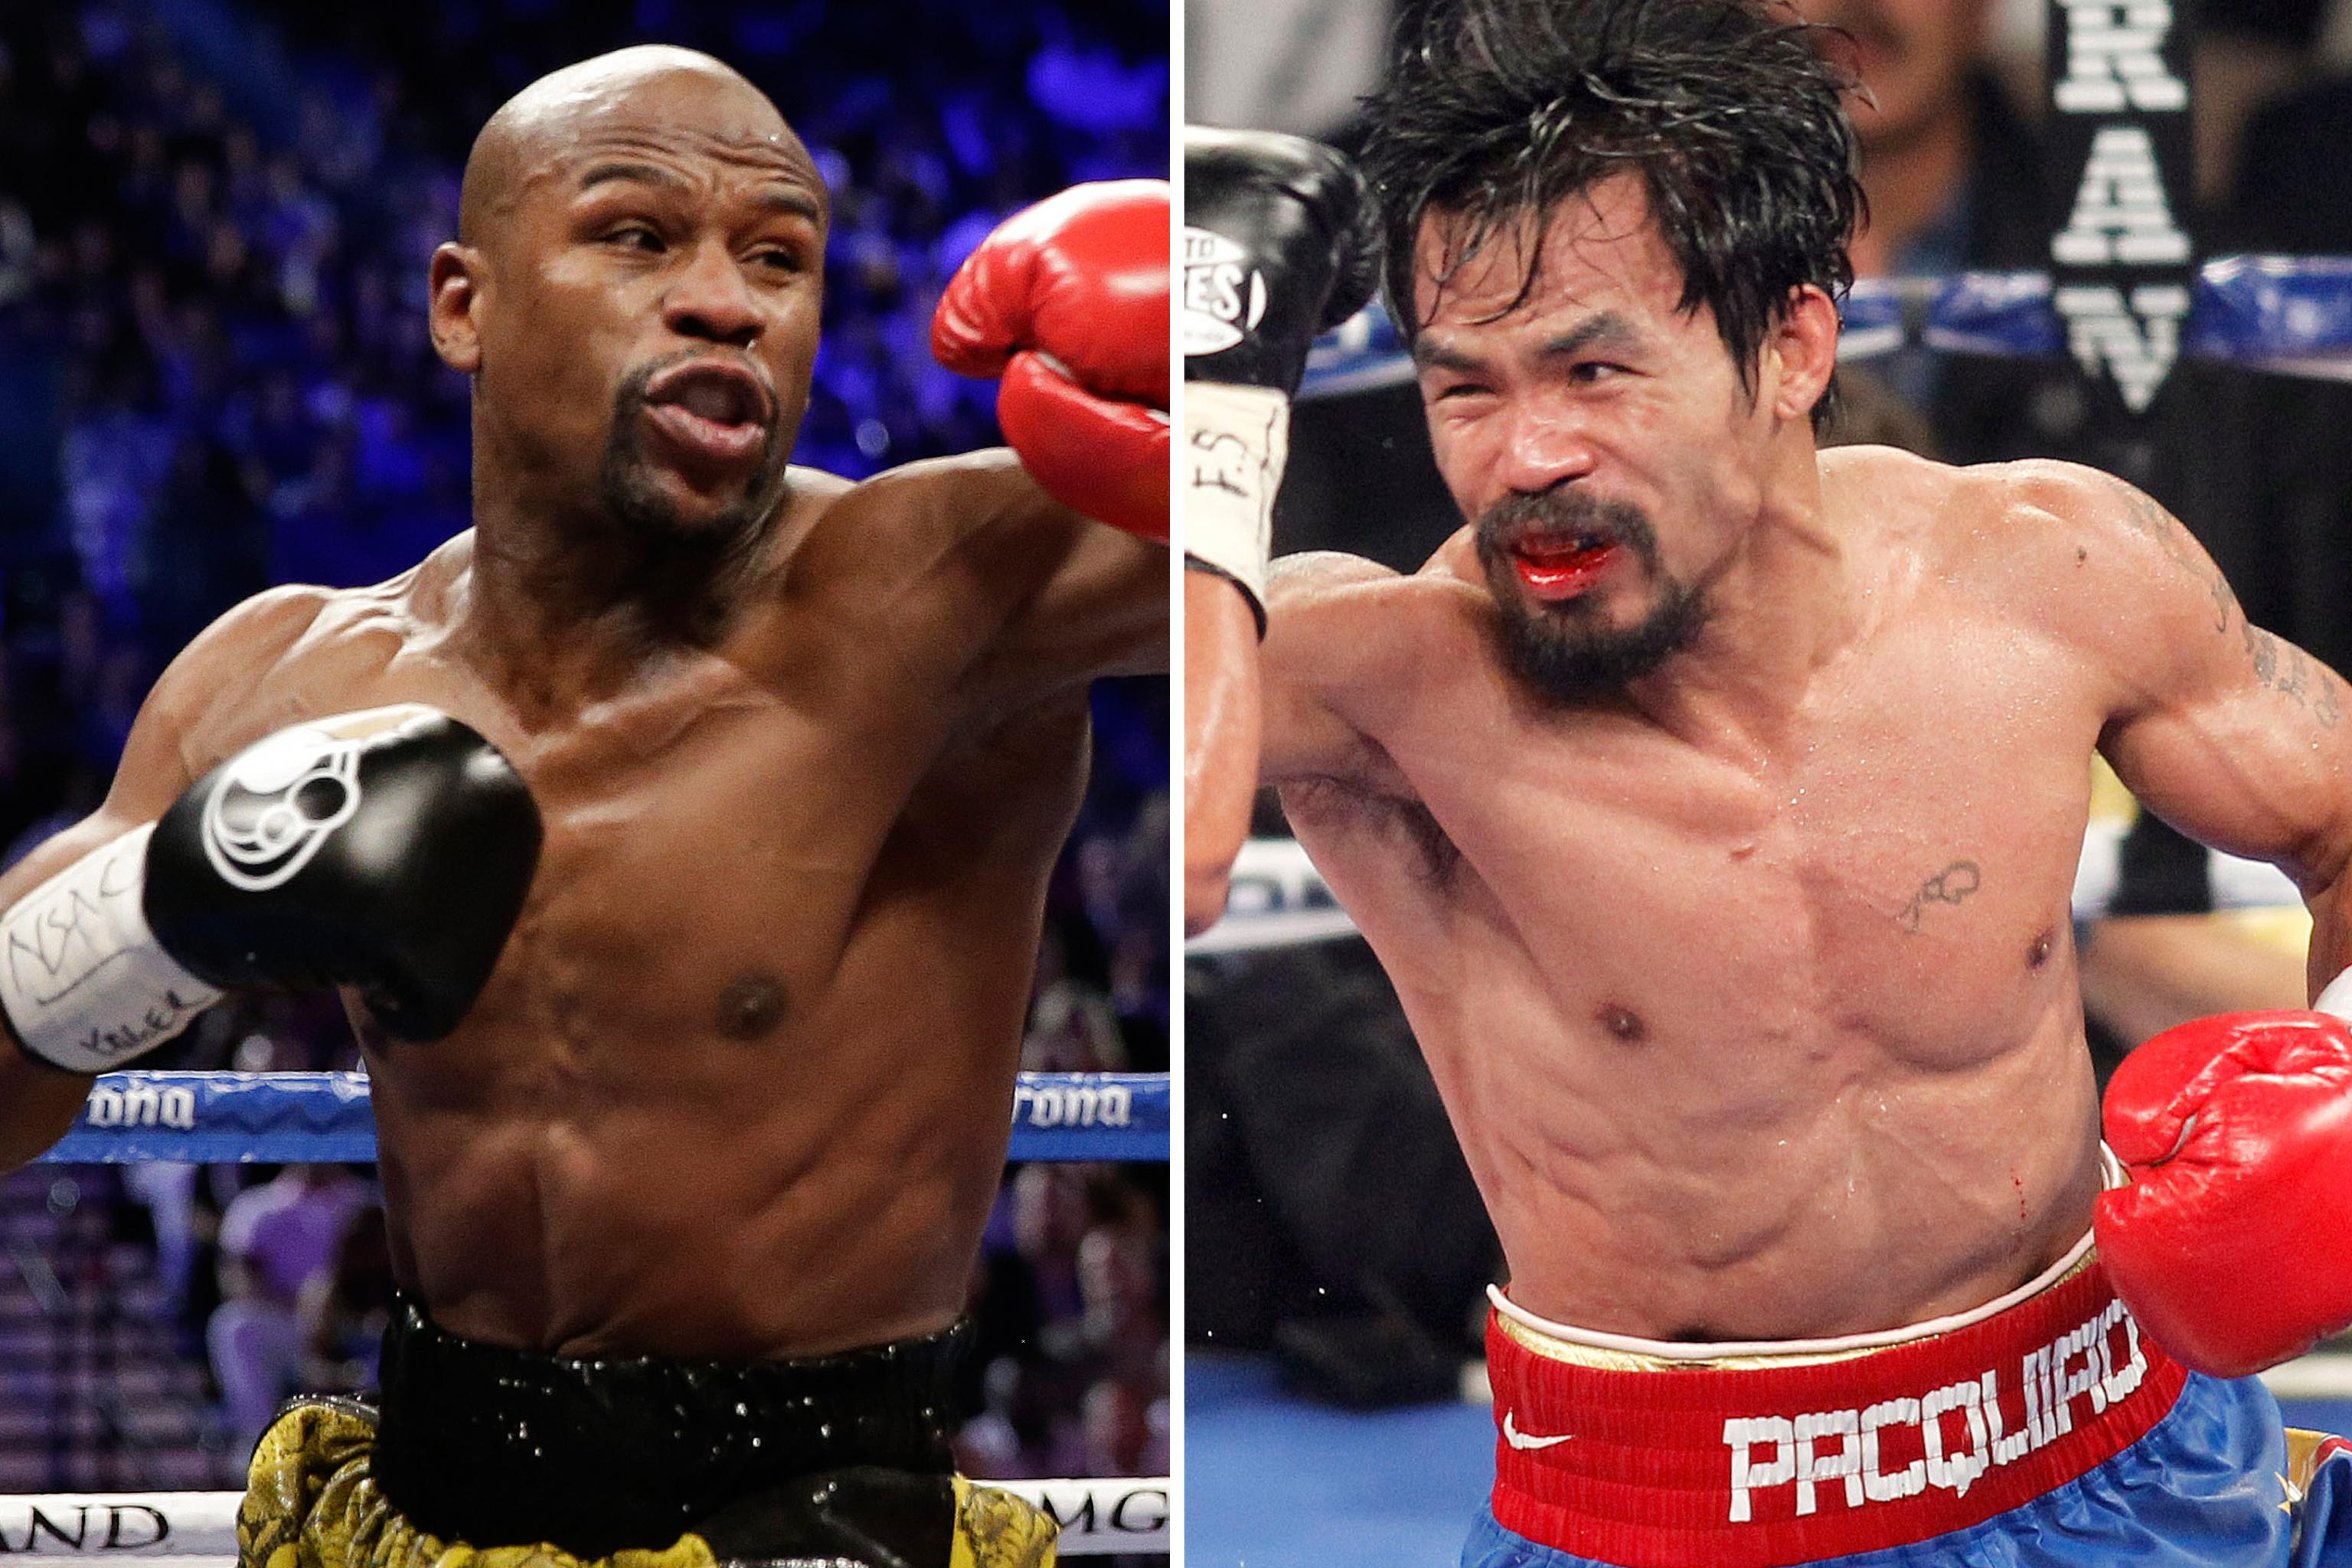 Pacquiao vs mayweather betting odds in vegas sports betting in new hampshire